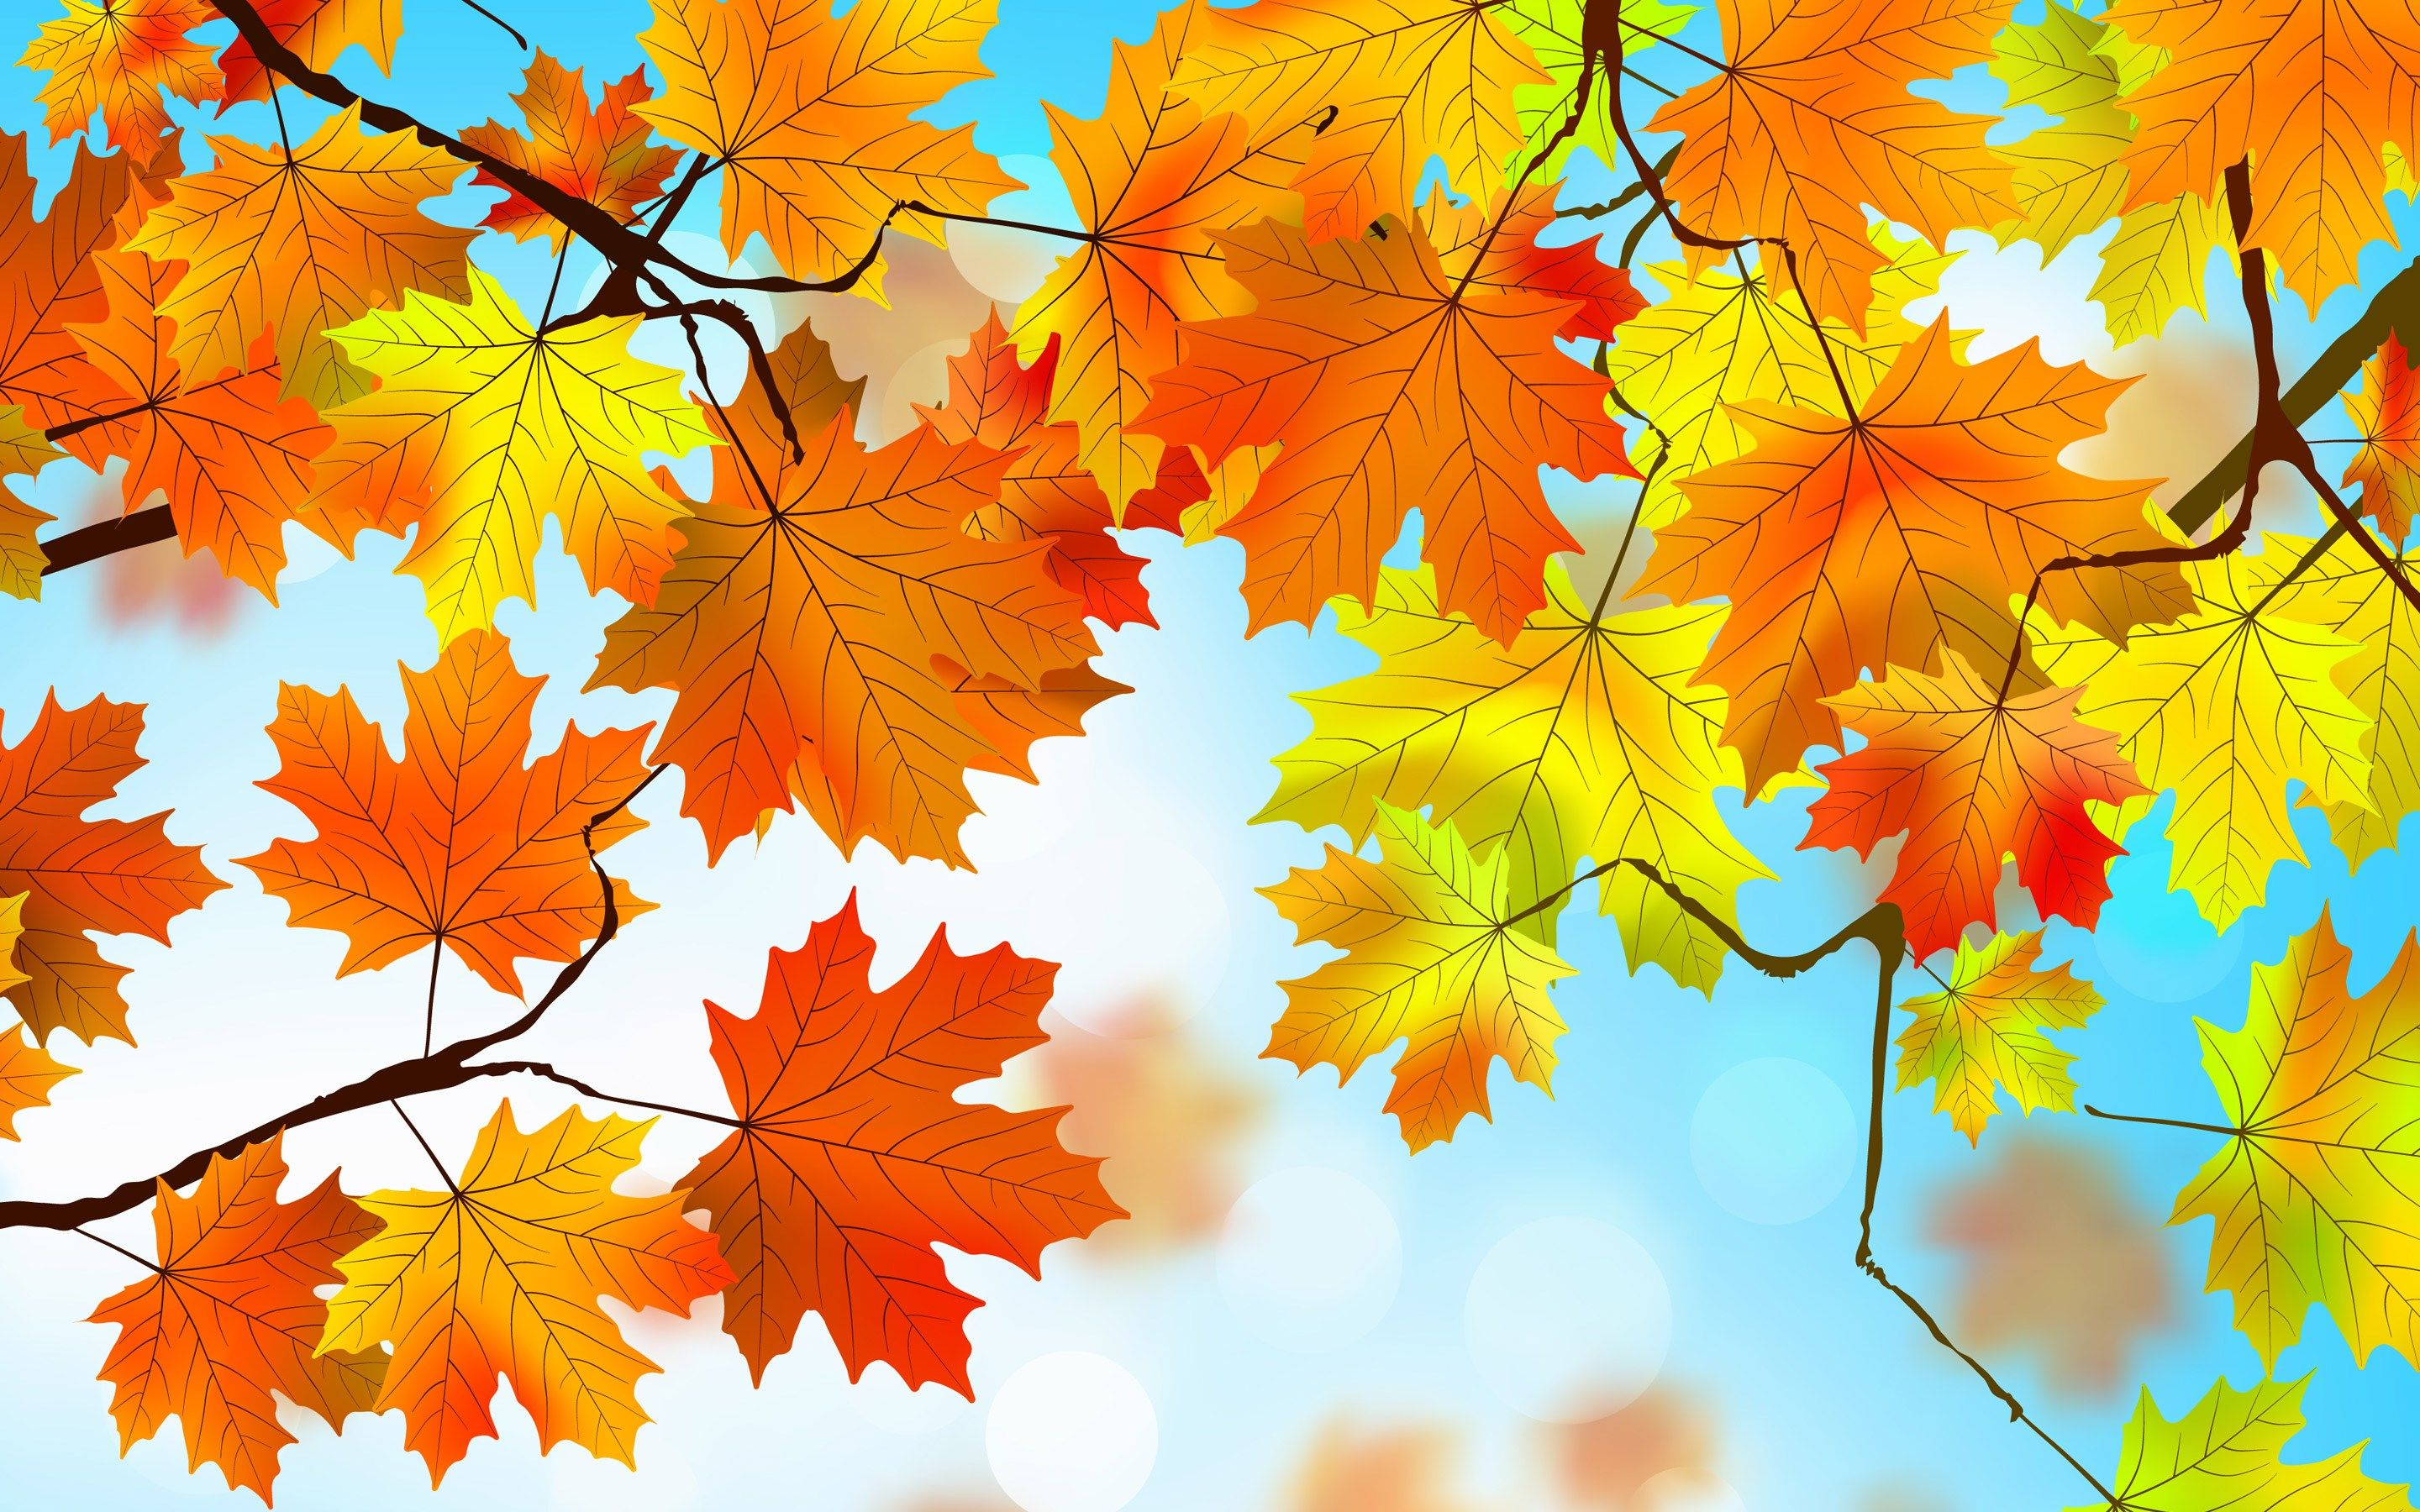 Autumn leaves hd hd background sharovarka pinterest hd fall leaves wallpaper adorable hdq backgrounds of fall leaves voltagebd Image collections